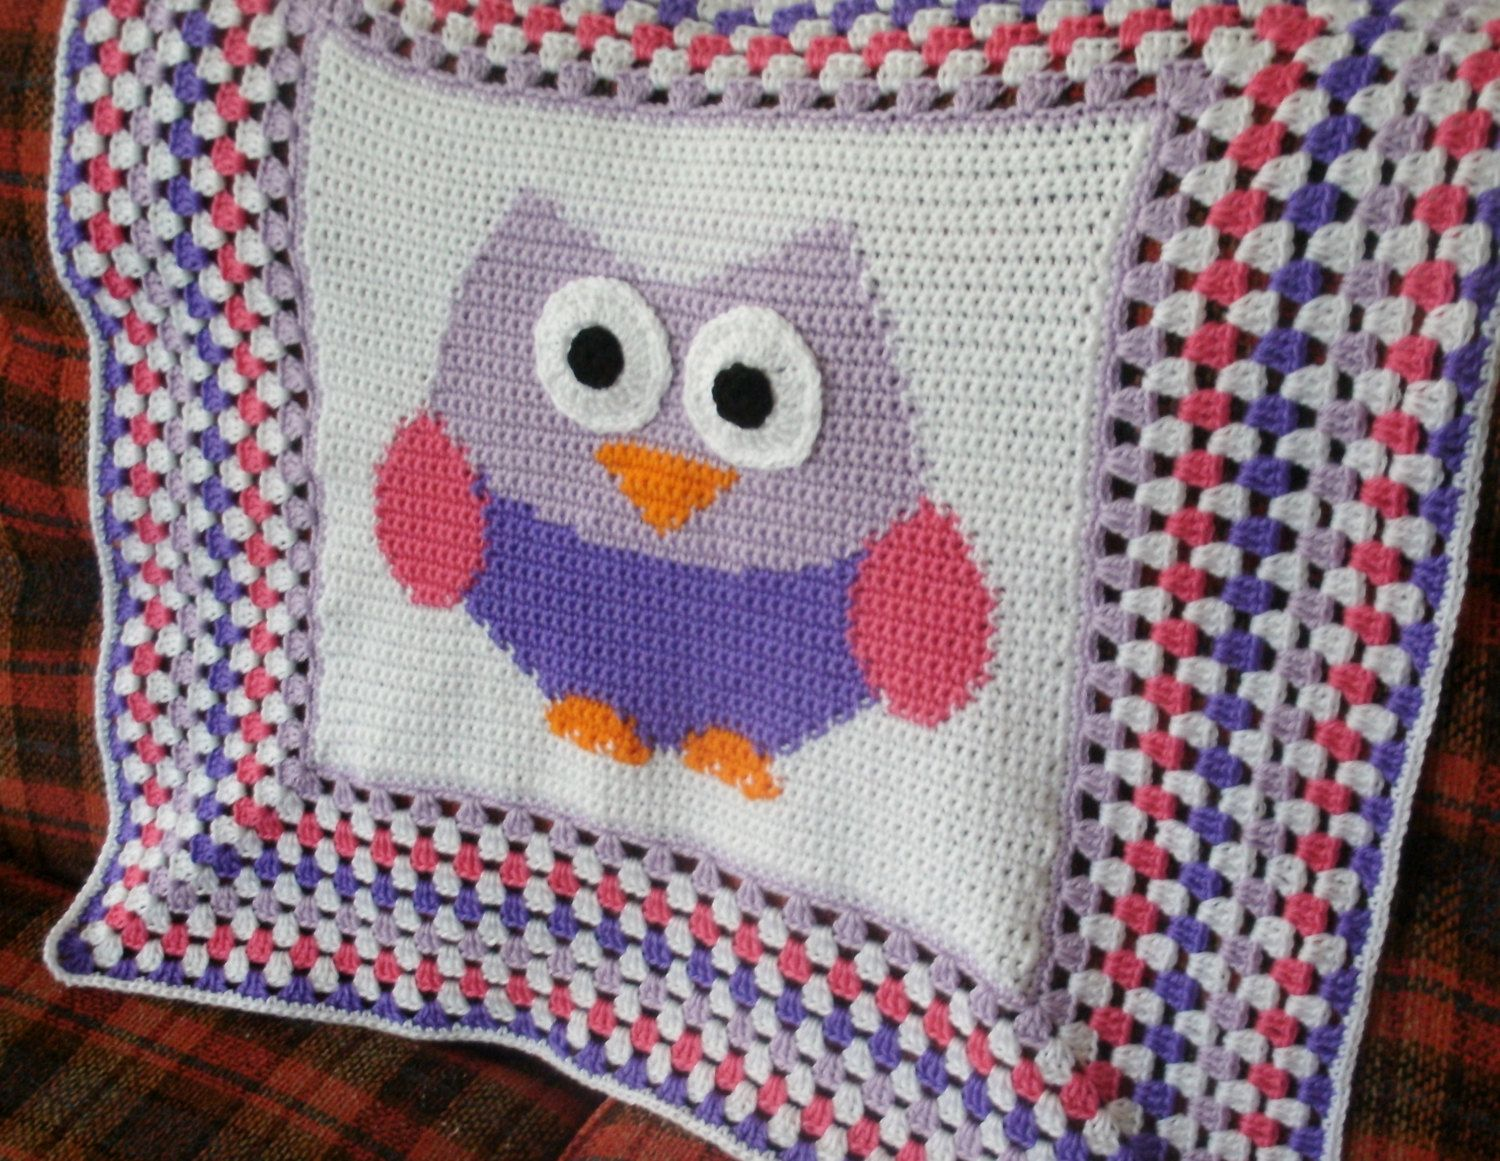 Owl baby blanket happy colors crochet baby afghan haken items similar to crochet owl baby afghan granny square border crochet baby blanket crochet throw nursery decor on etsy bankloansurffo Image collections